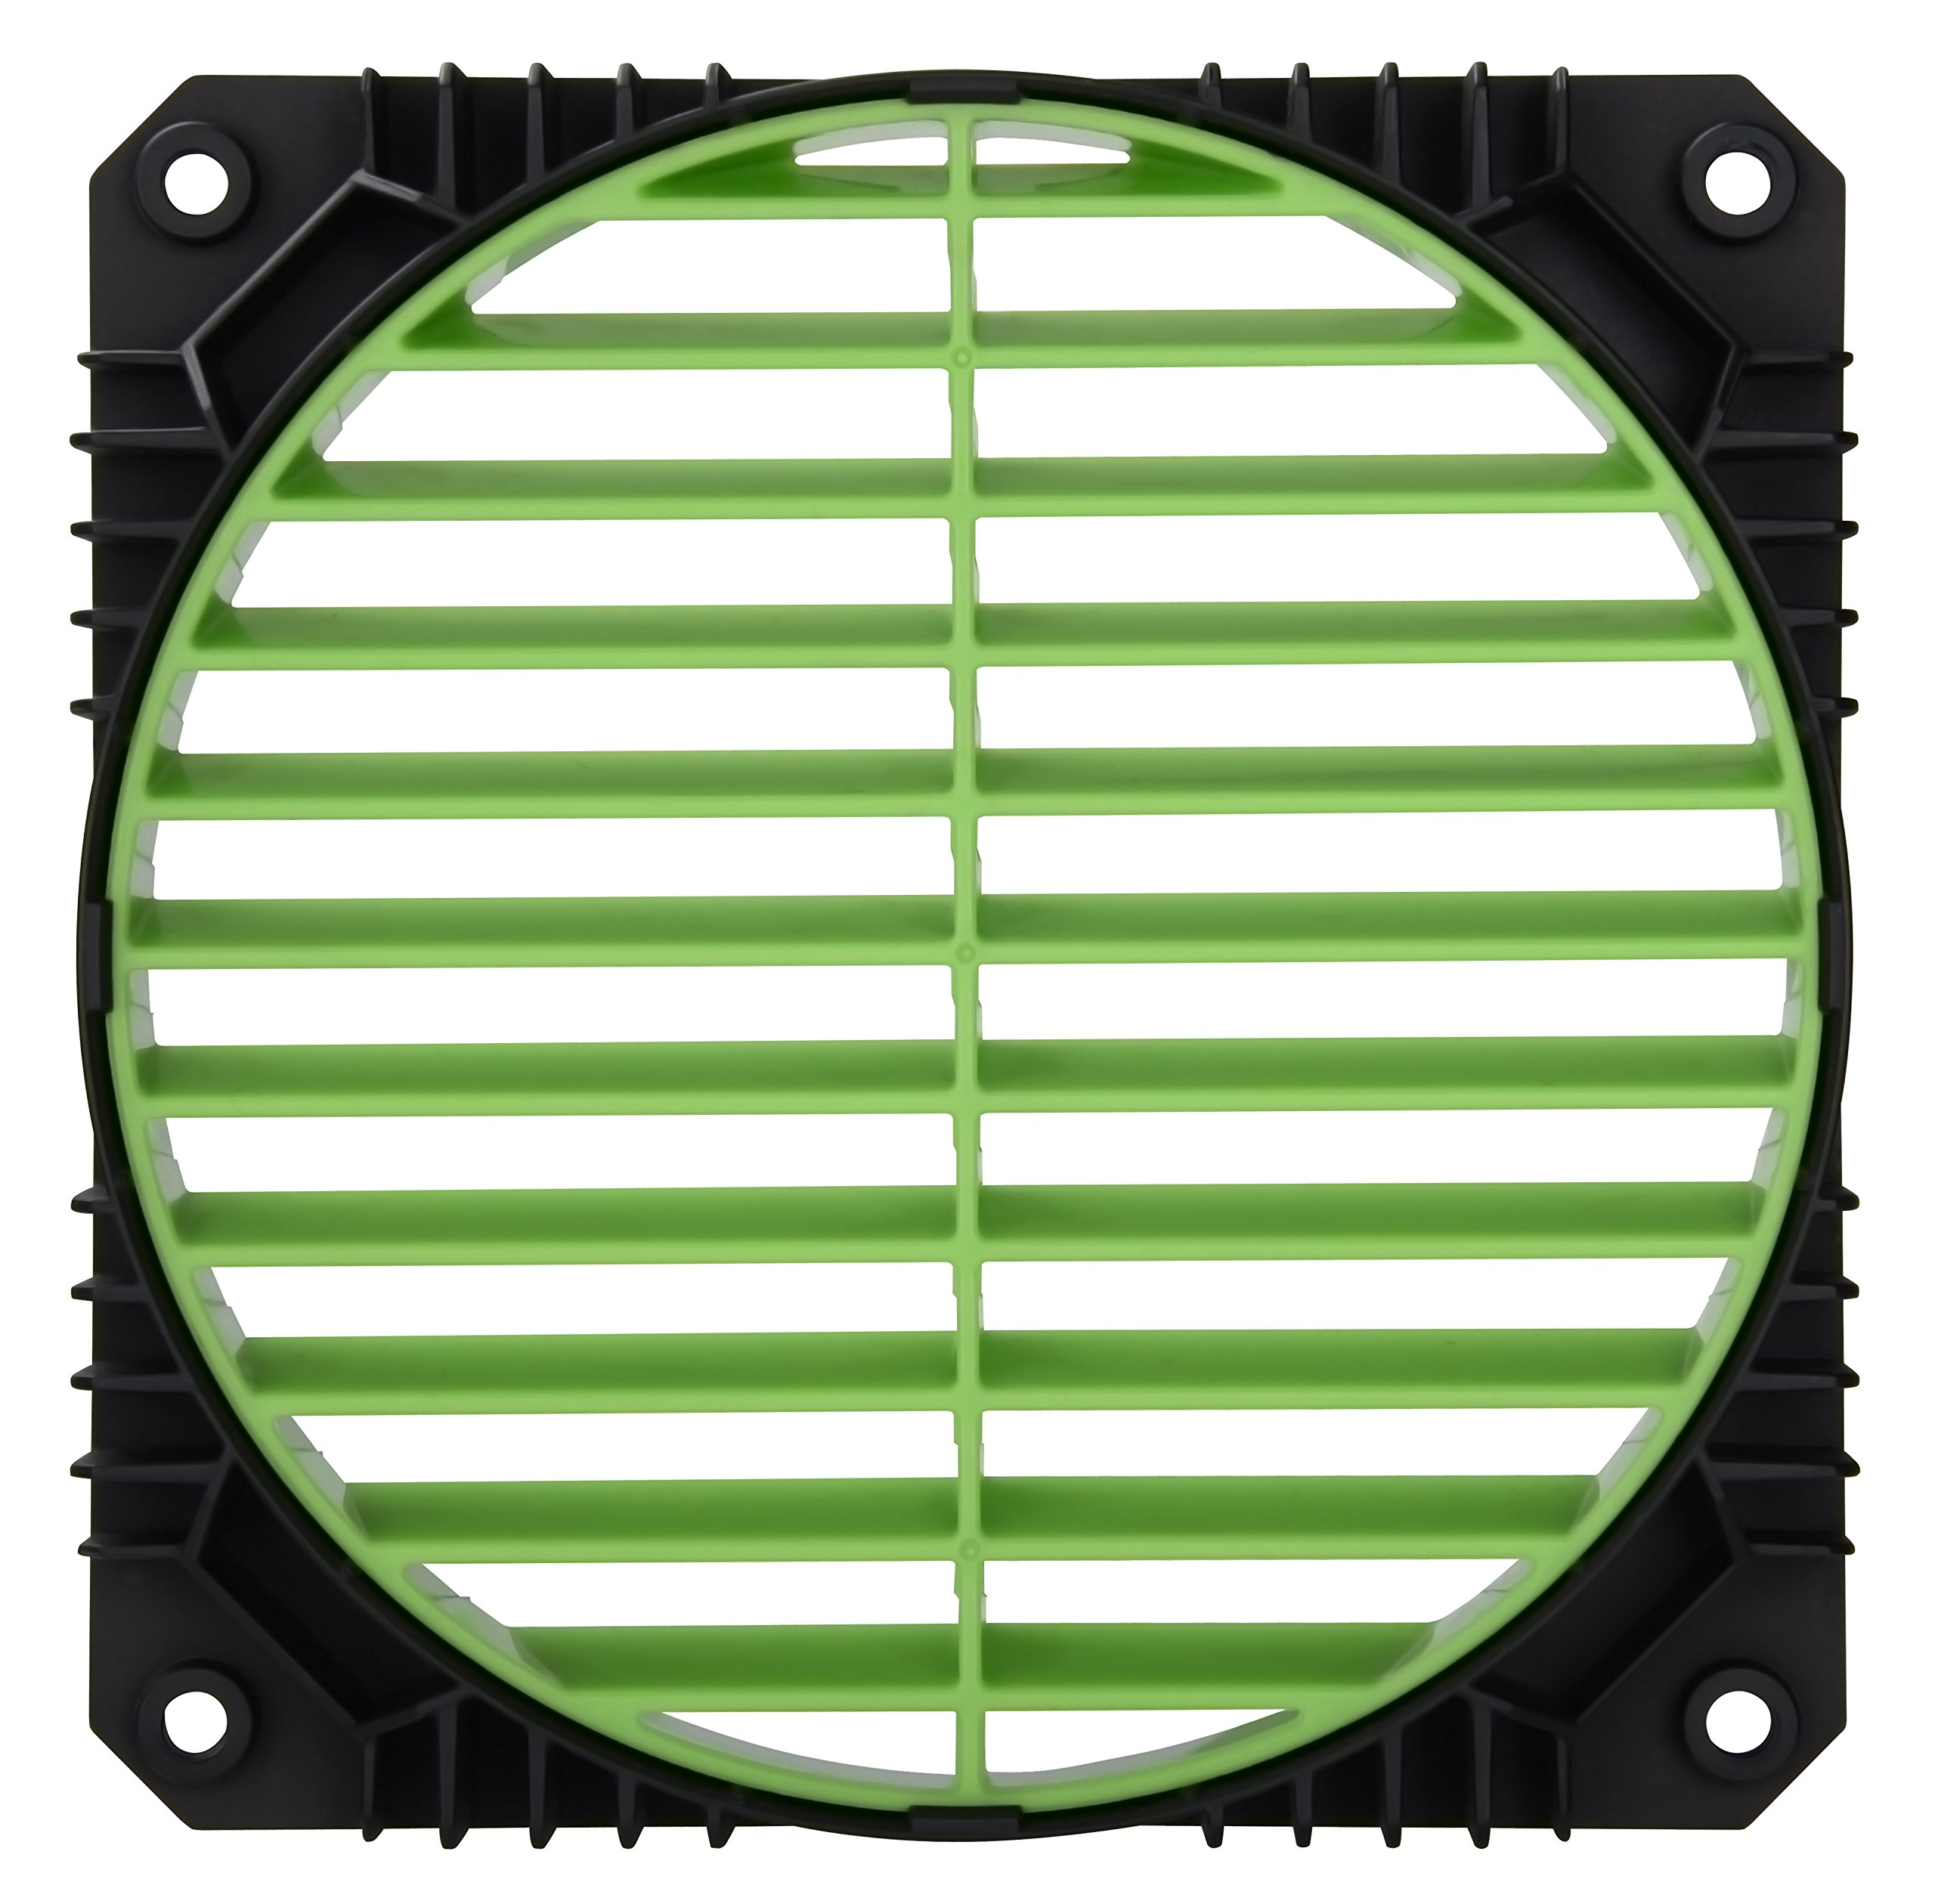 Enermax Air Guide 360° Rotatable Fan Grill, Solution to Airflow Management Twin Pack Green, EAG001-G by Enermax (Image #2)